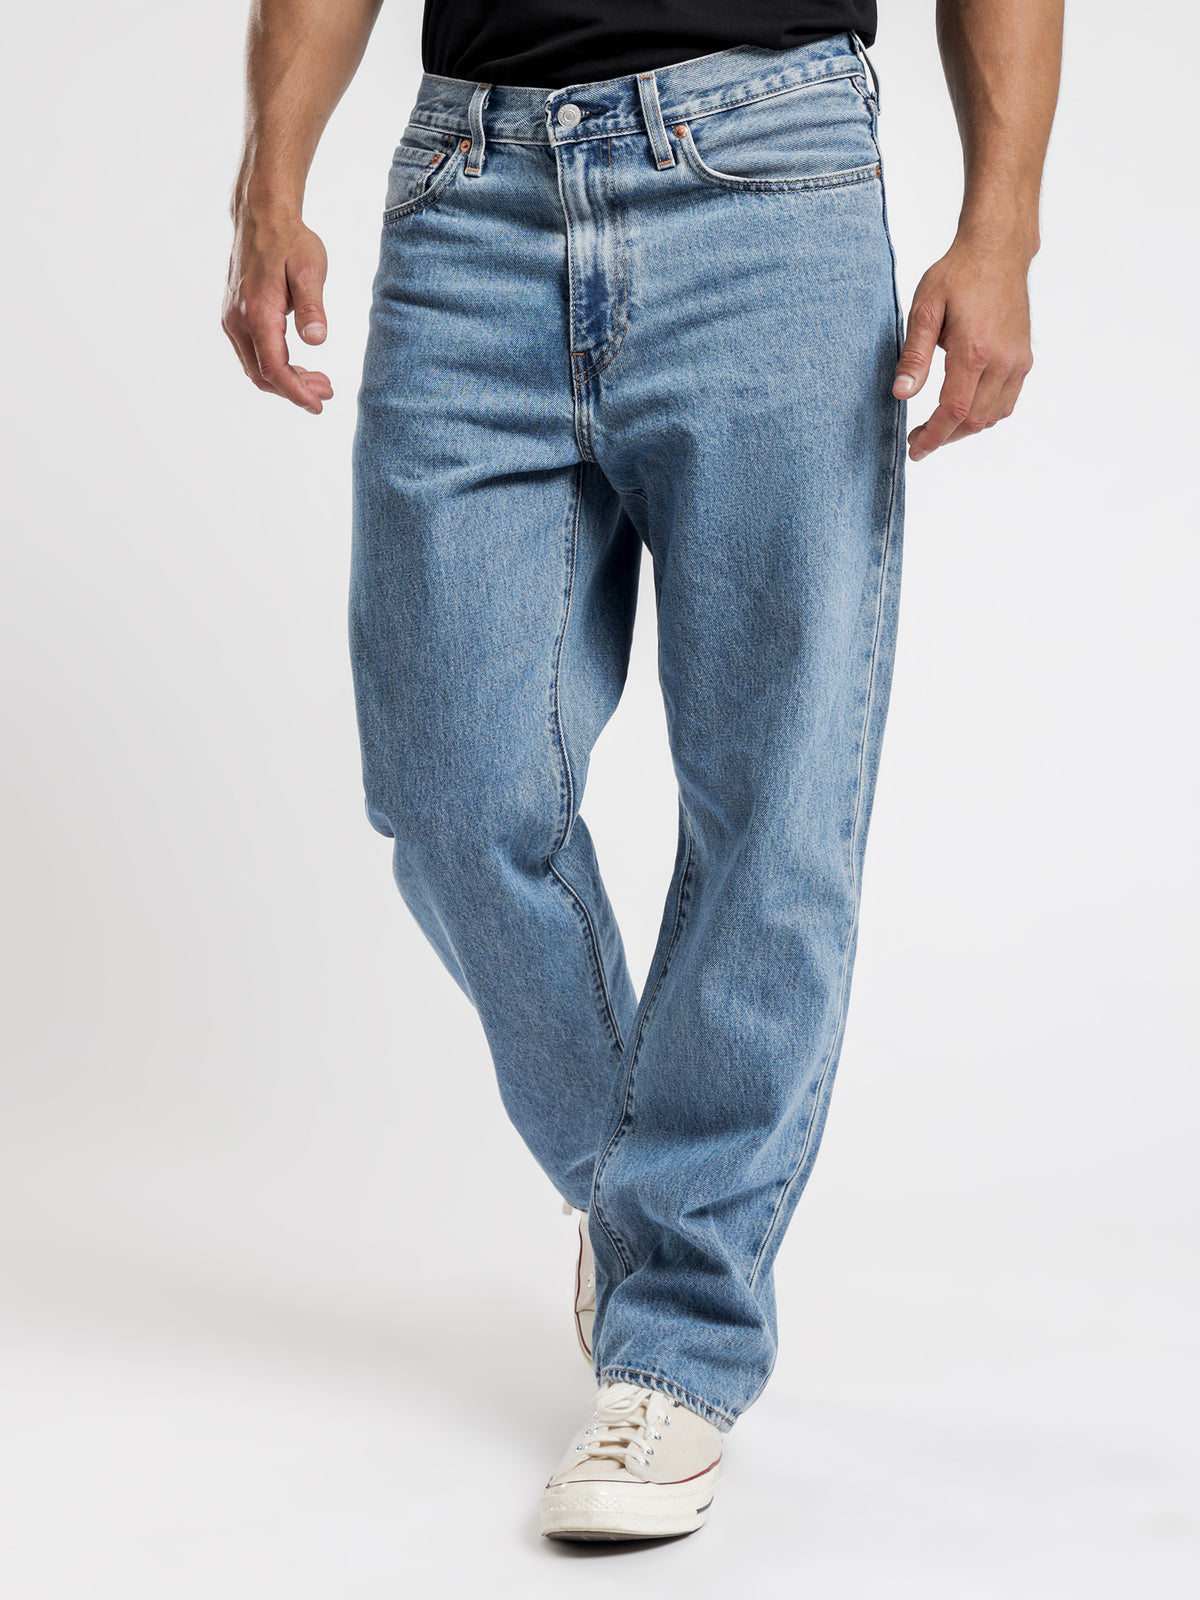 Stay Loose Jeans in Denim Blue